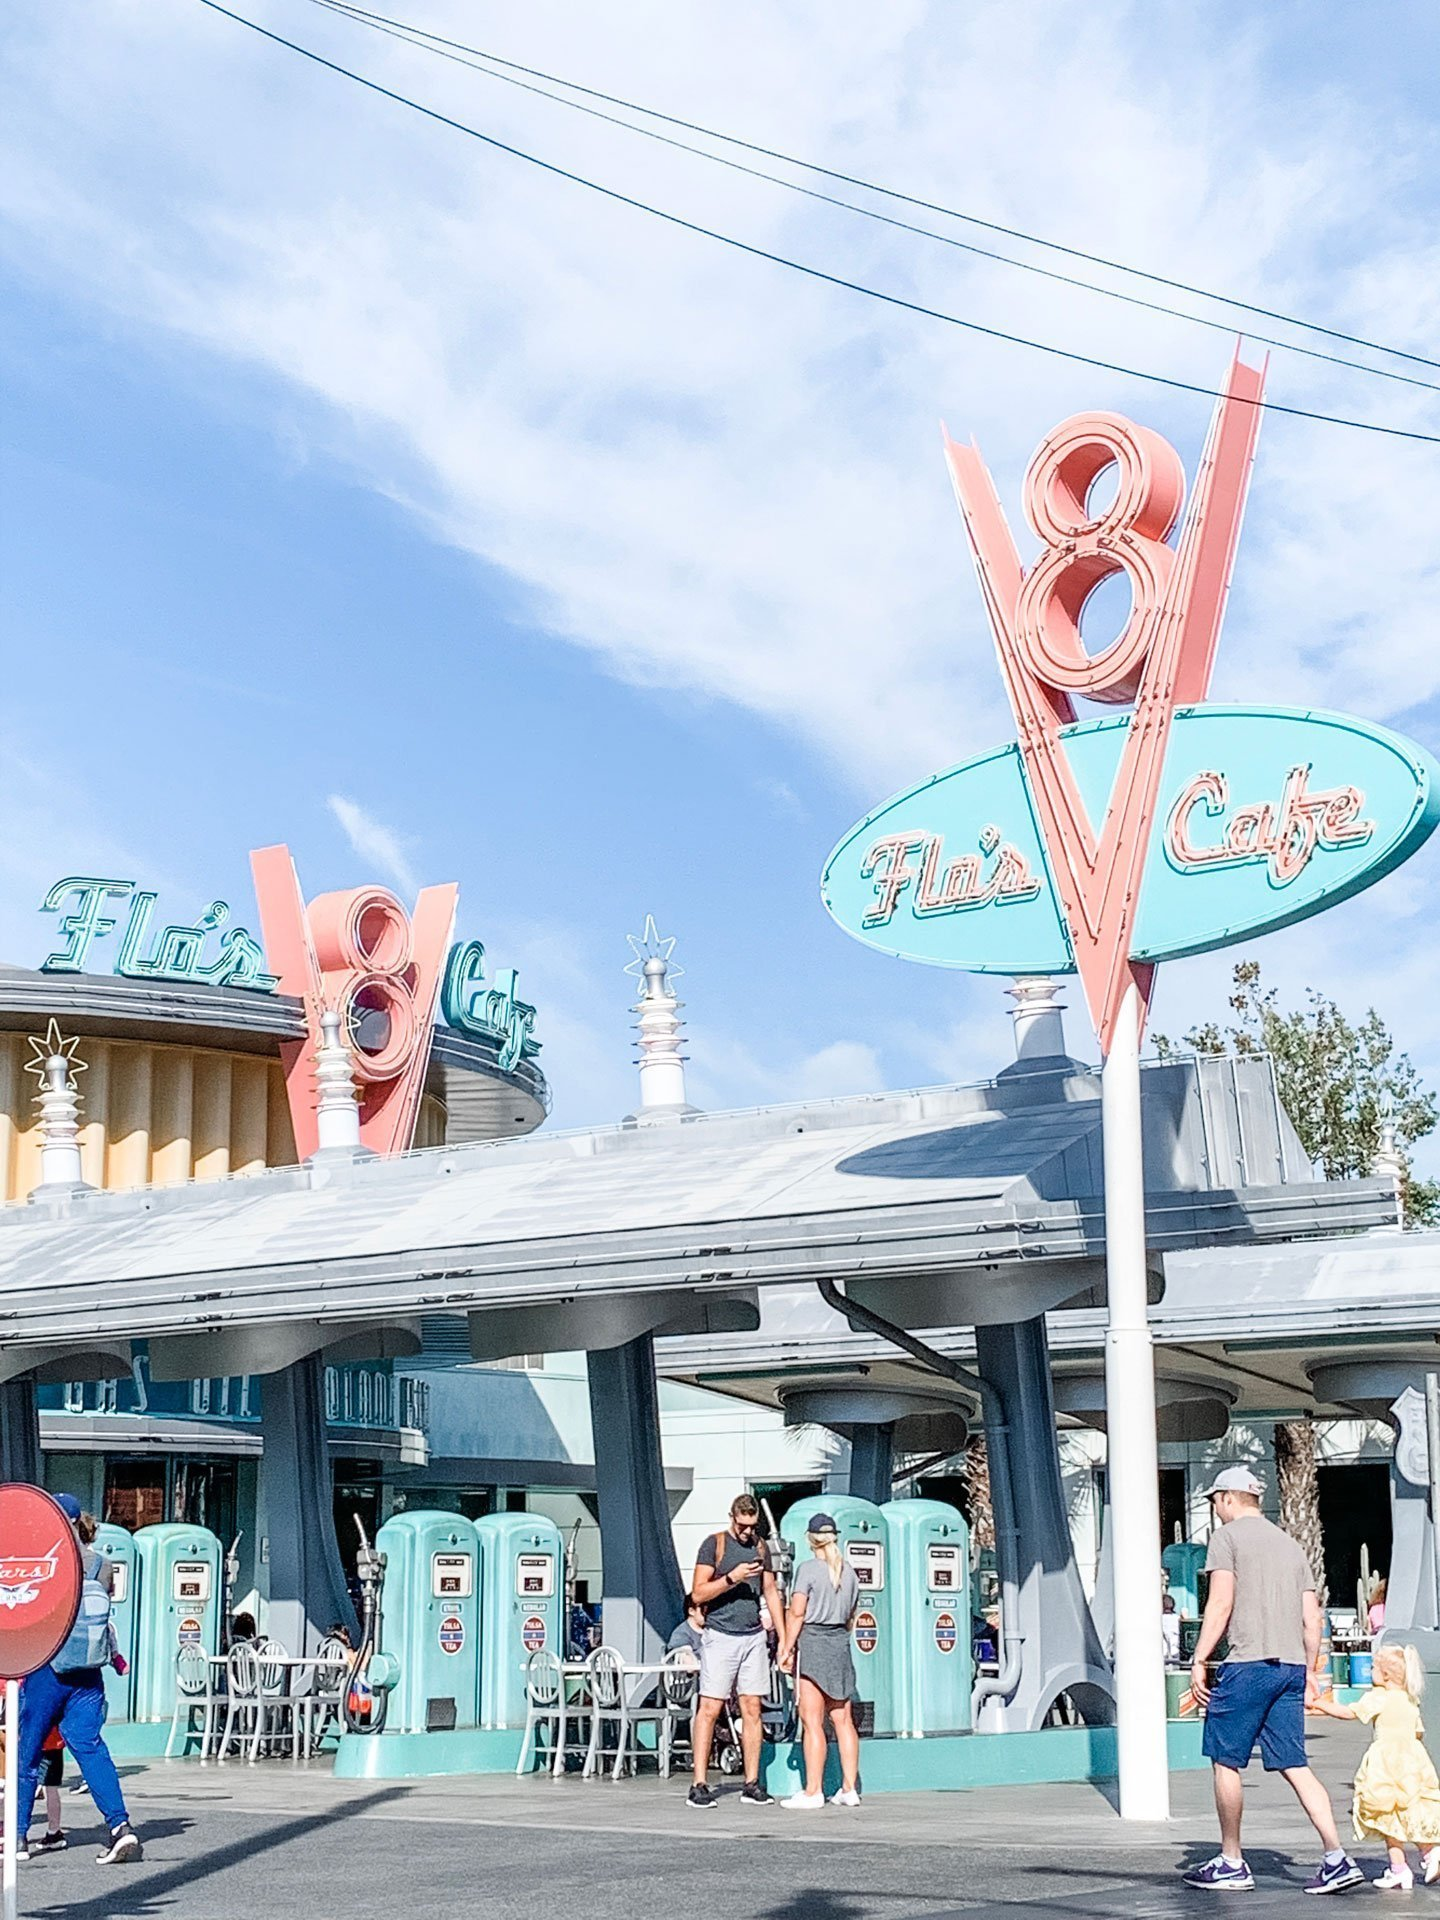 Disney California Adventure Cars Land - Flo's Cafe Sign